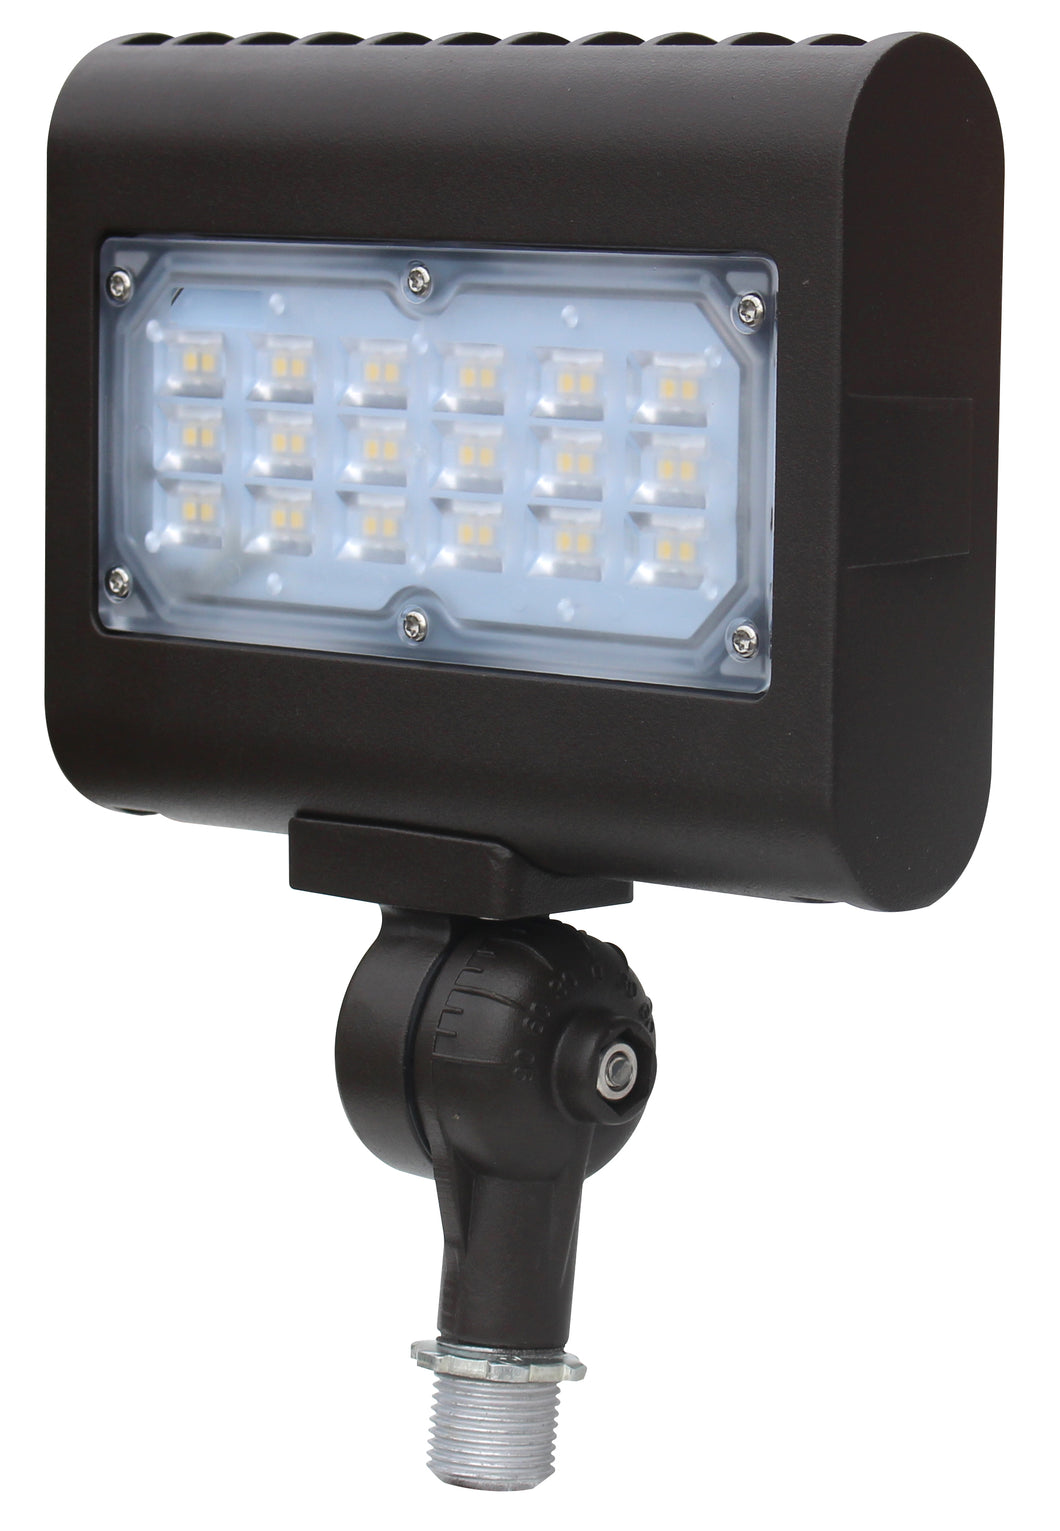 LED Area Light - Multi-Purpose - 15W - 3K / 4K / 5K